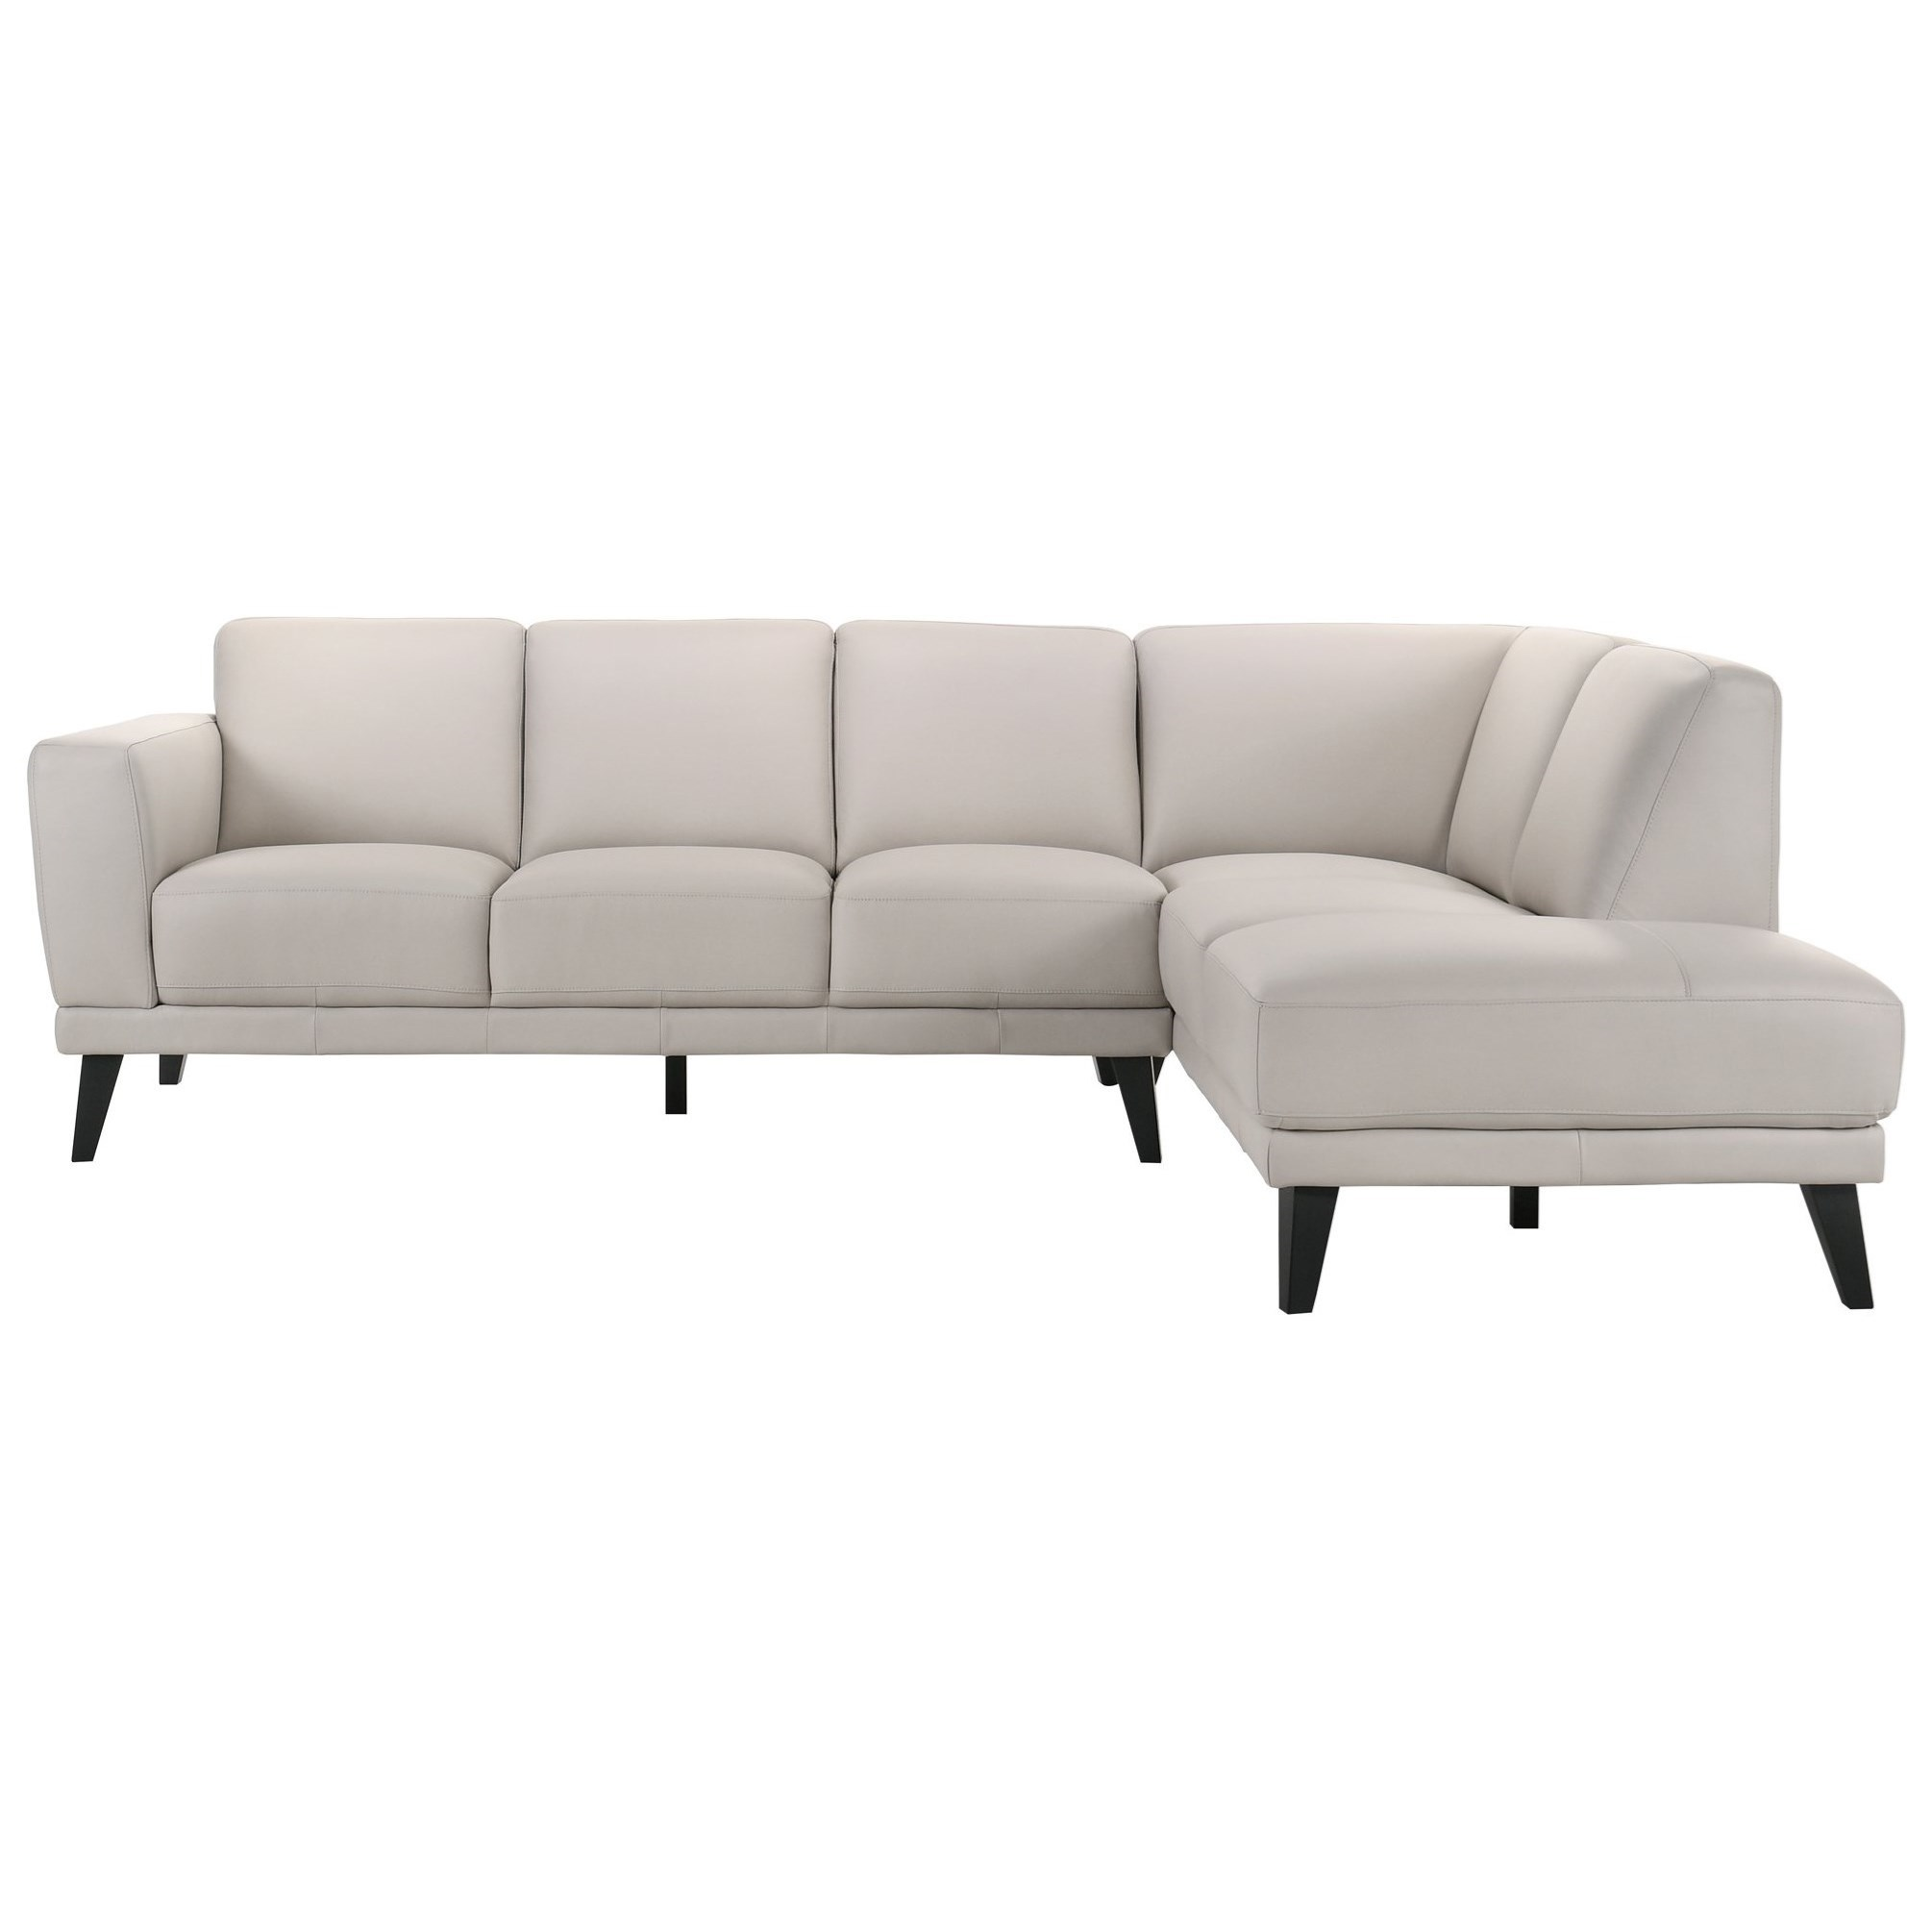 5-Seat Sectional w/ RAF Chaise